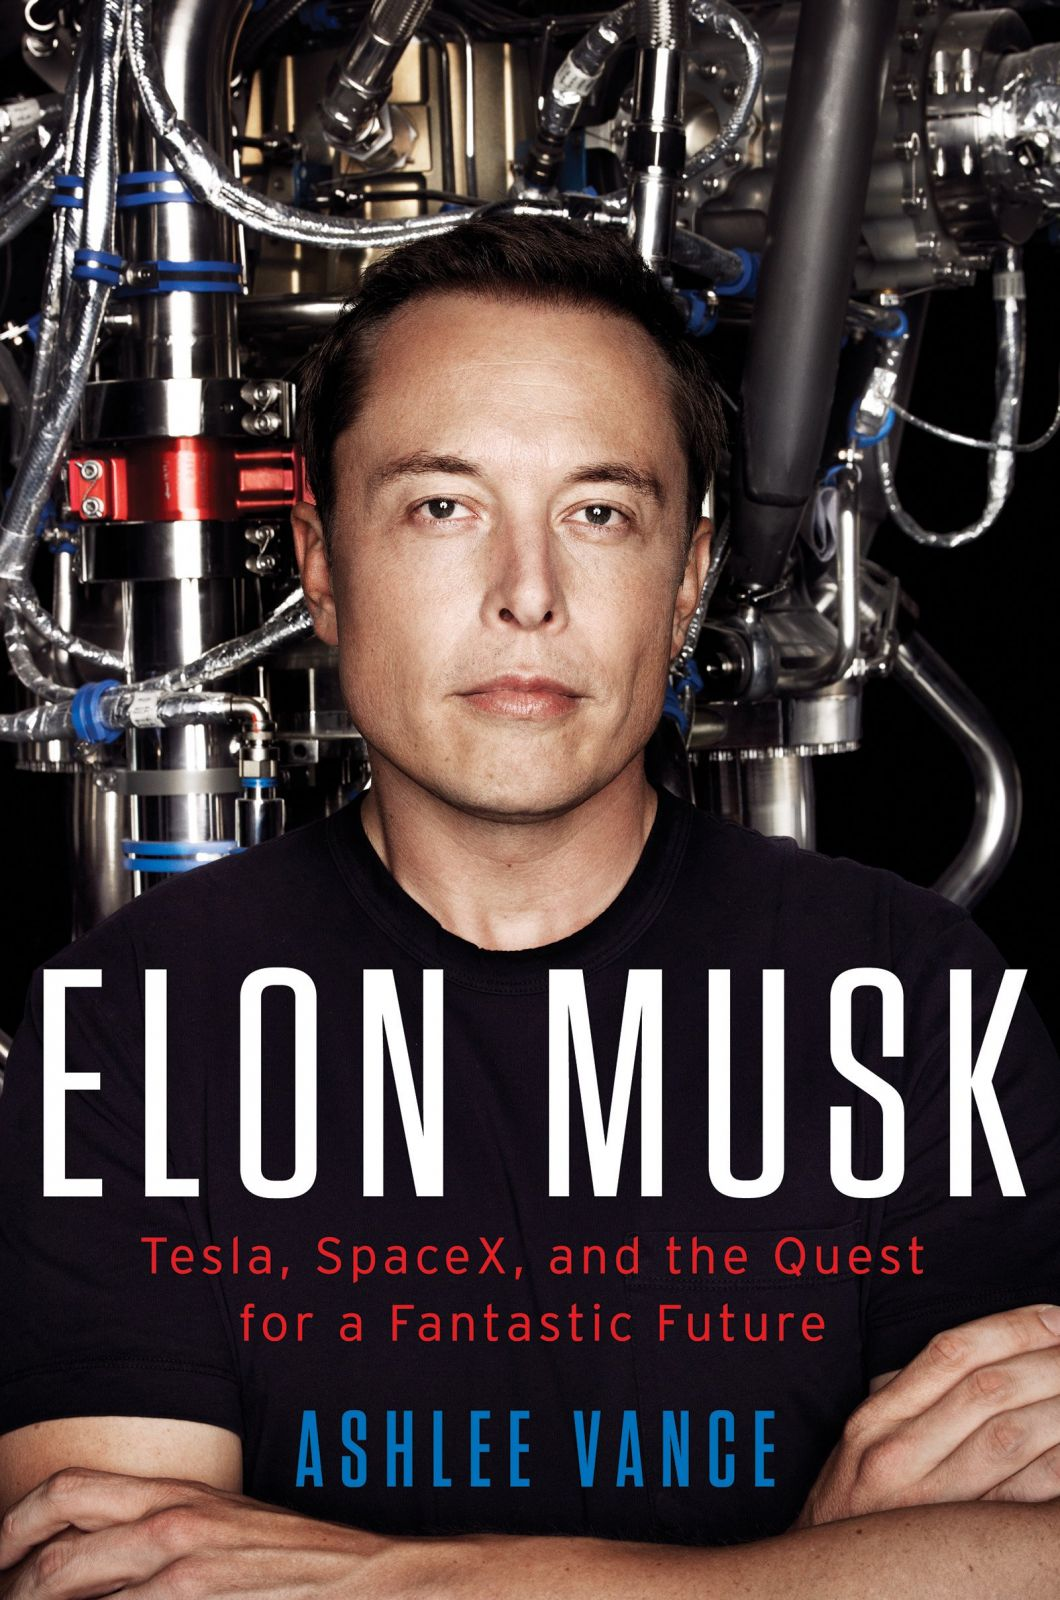 elon musk tesla spacex and the quest for a fantastic future image credit harper collins posted